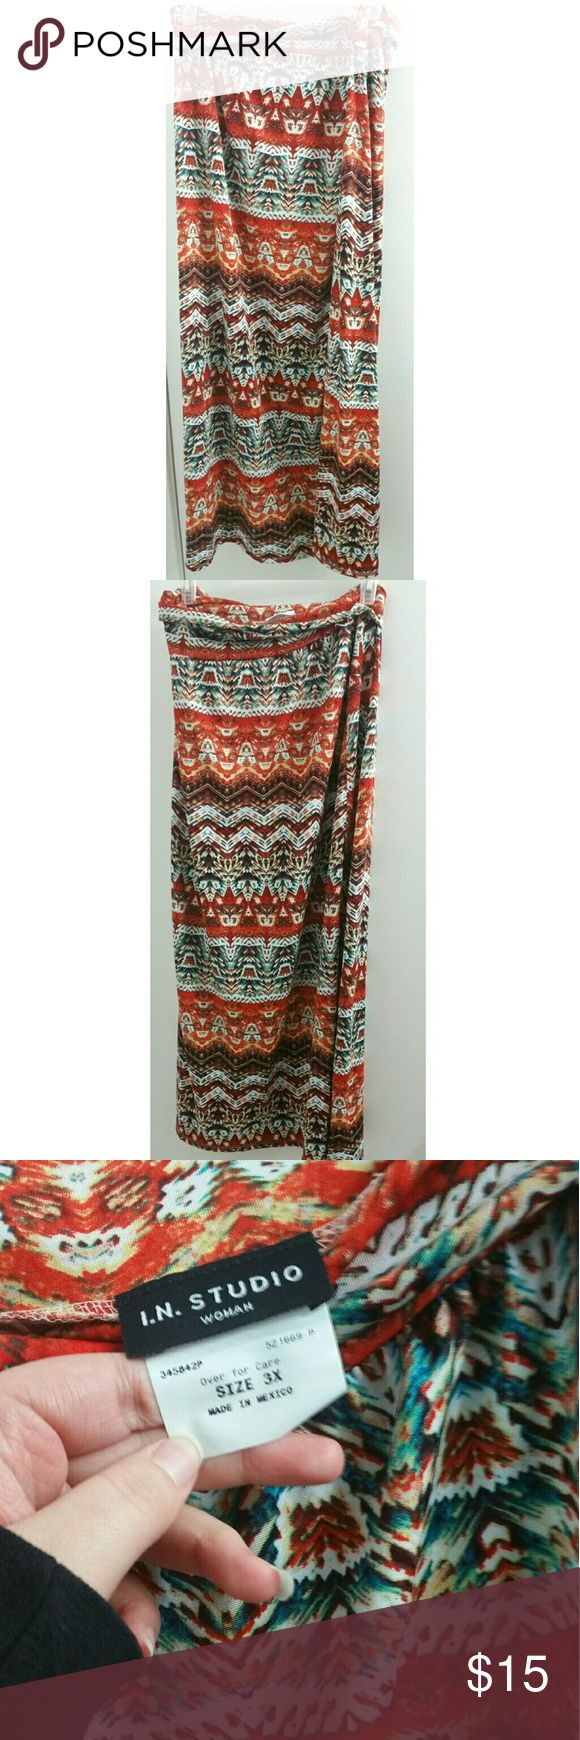 I.N Studio Plus Size Tribal Maxi Skirt This is a 3x size maxi skirt by I.N Studio. There is a slit on the side that goes to almost knee length. The material is soft and silky like athletic leggings or lularoe skirts. It has a vibrant red and blue tribal print however it appears it has belt loops but there is no matching belt. Other than that the skirt is in fantastic condition and is very high quality material. I.N Studio Women Skirts Maxi